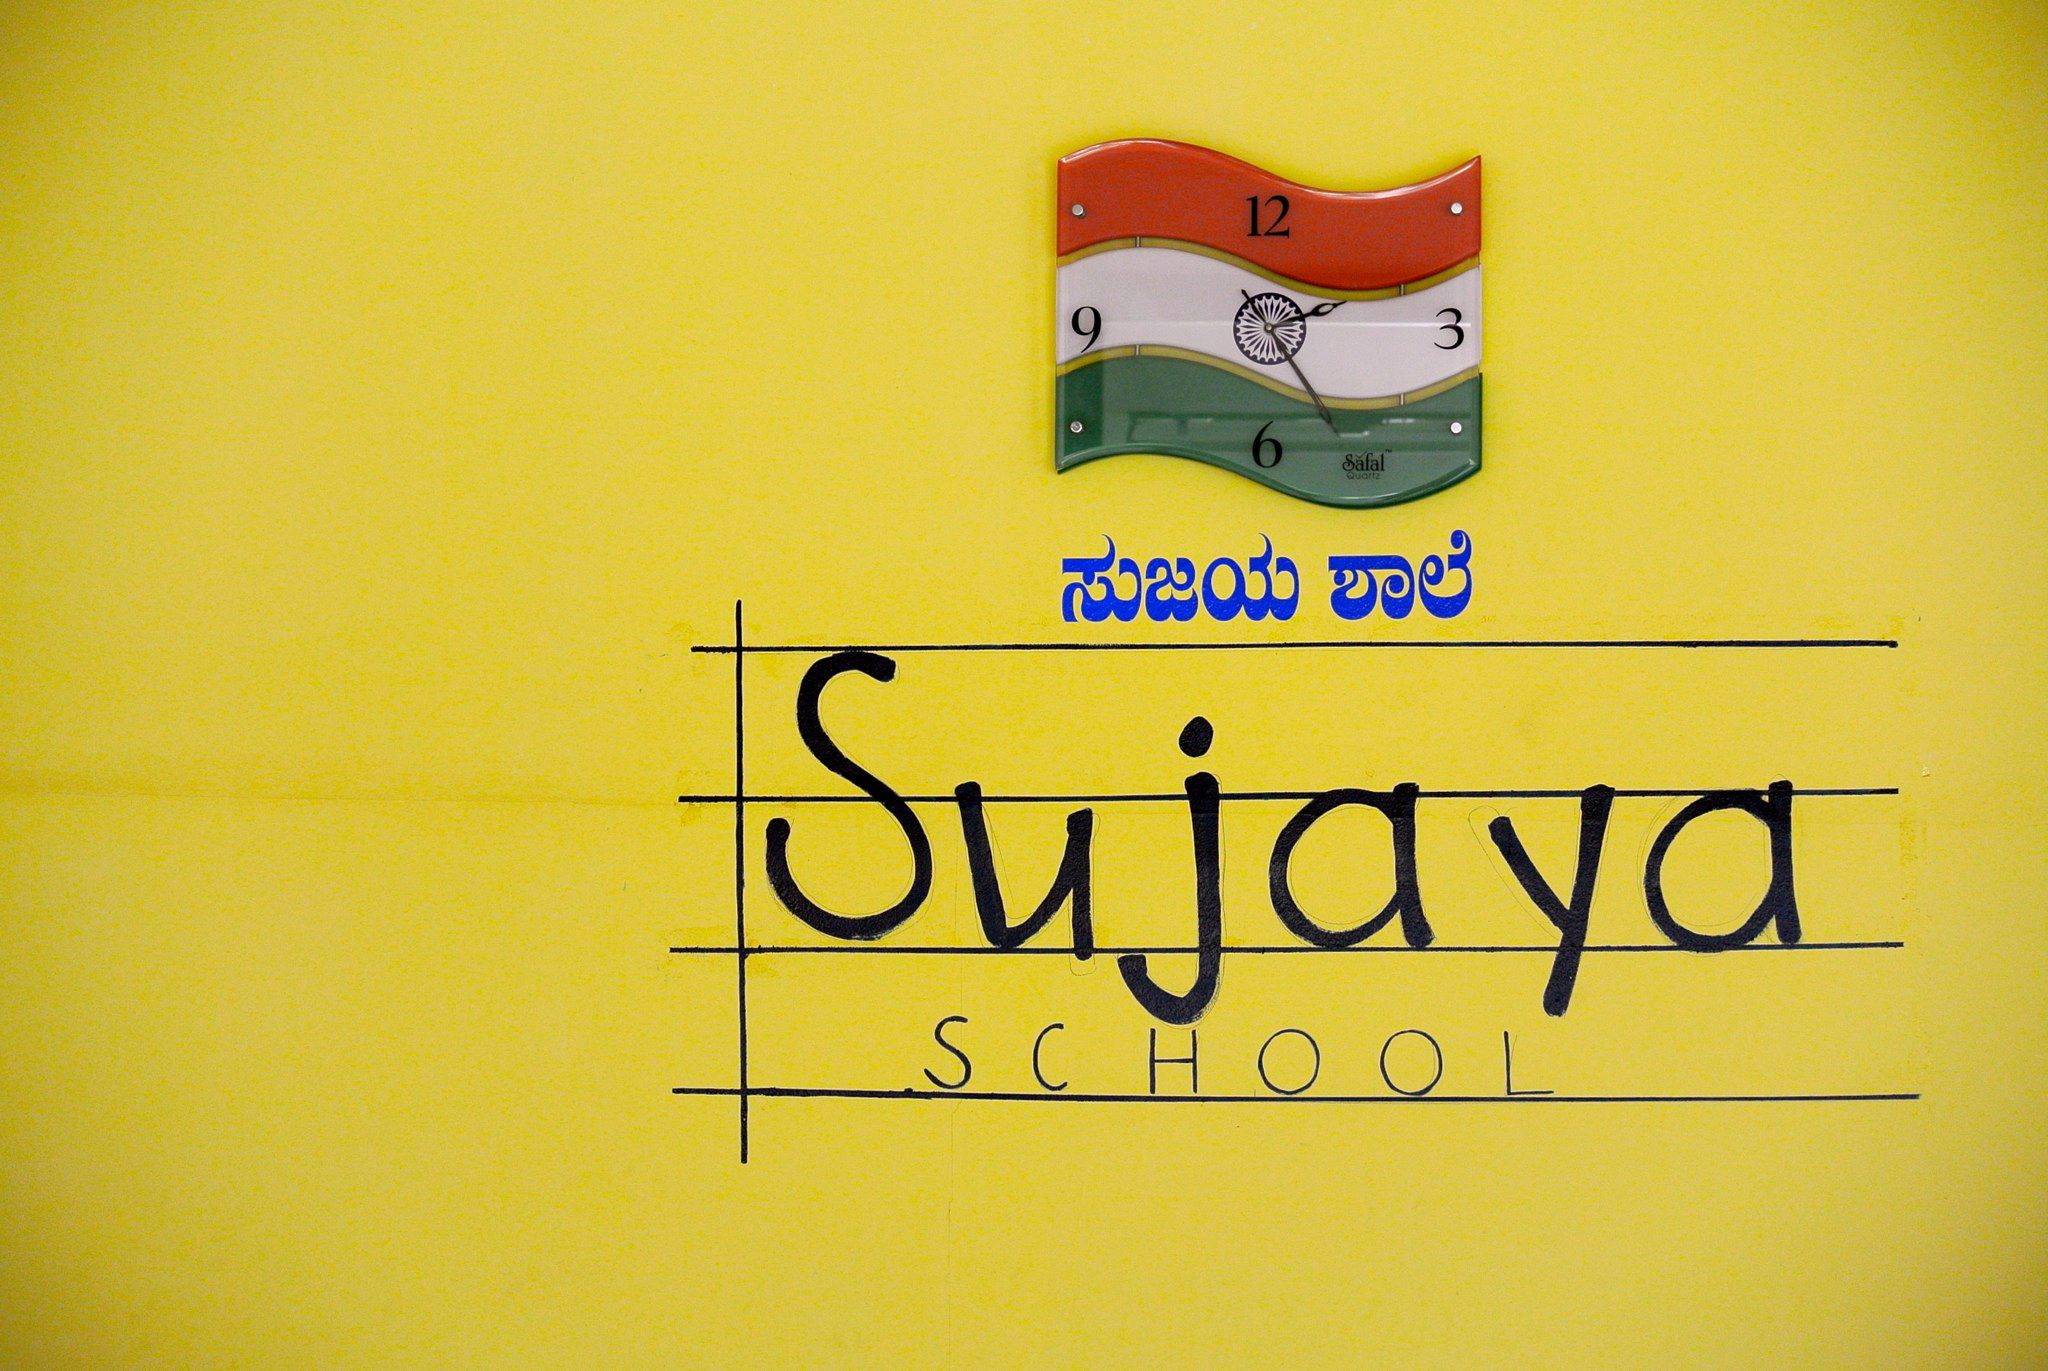 Sujaya school hand written in latin on a ledger line, above there is indian script ('kannada') and the national flag of India.